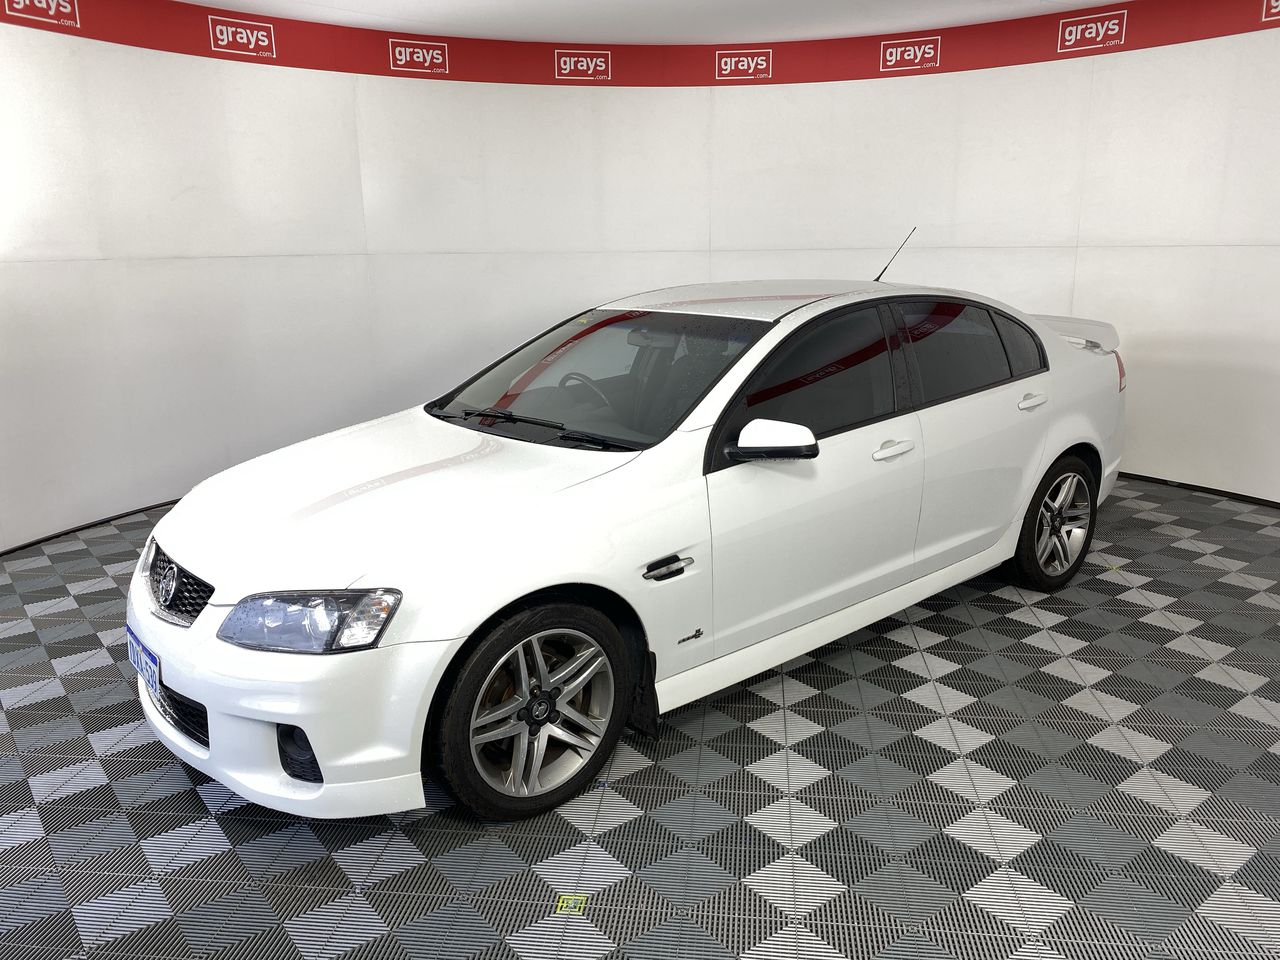 2012 Holden Commodore SV6 VE Automatic Sedan 134414 Kms